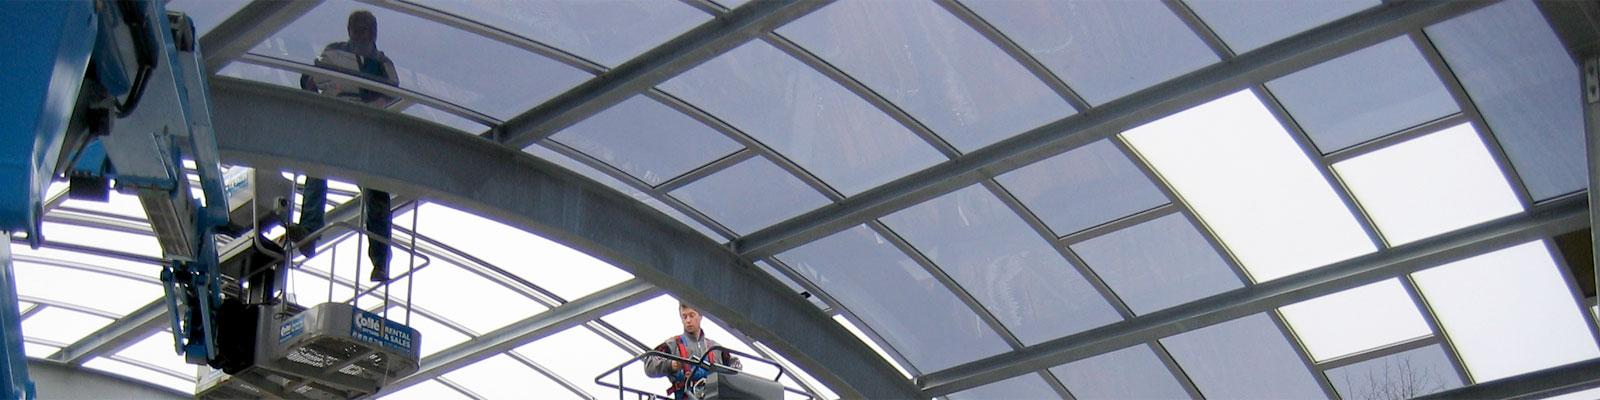 polycarbonate-rooflight10